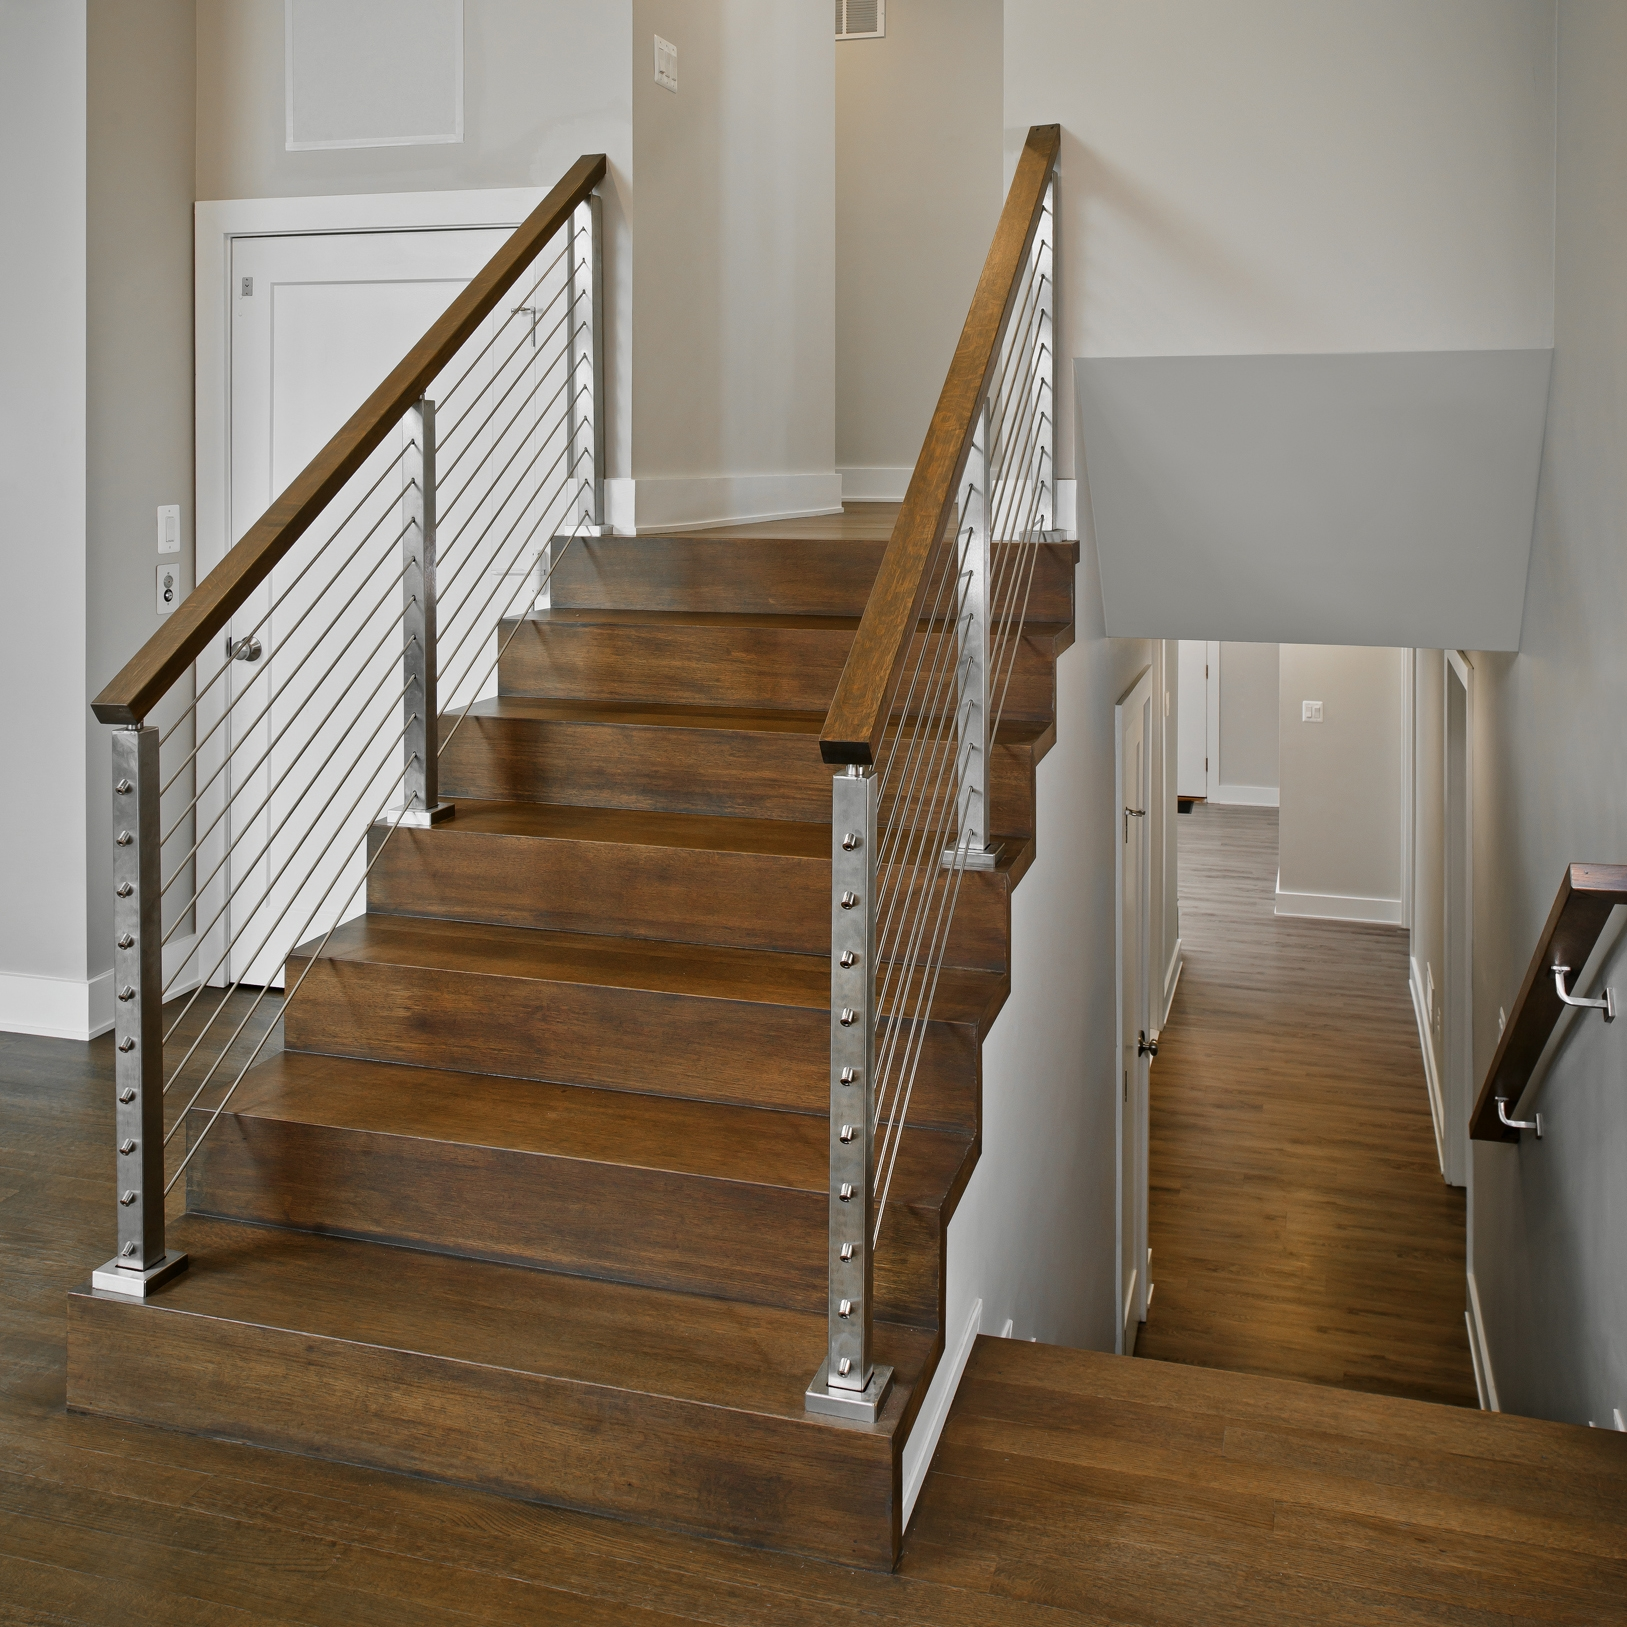 Staircase Design Ideas Owings Brothers Contracting | Two Story Staircase Designs | Entryway | Stunning | Glass | Two Storey House | 2 Story